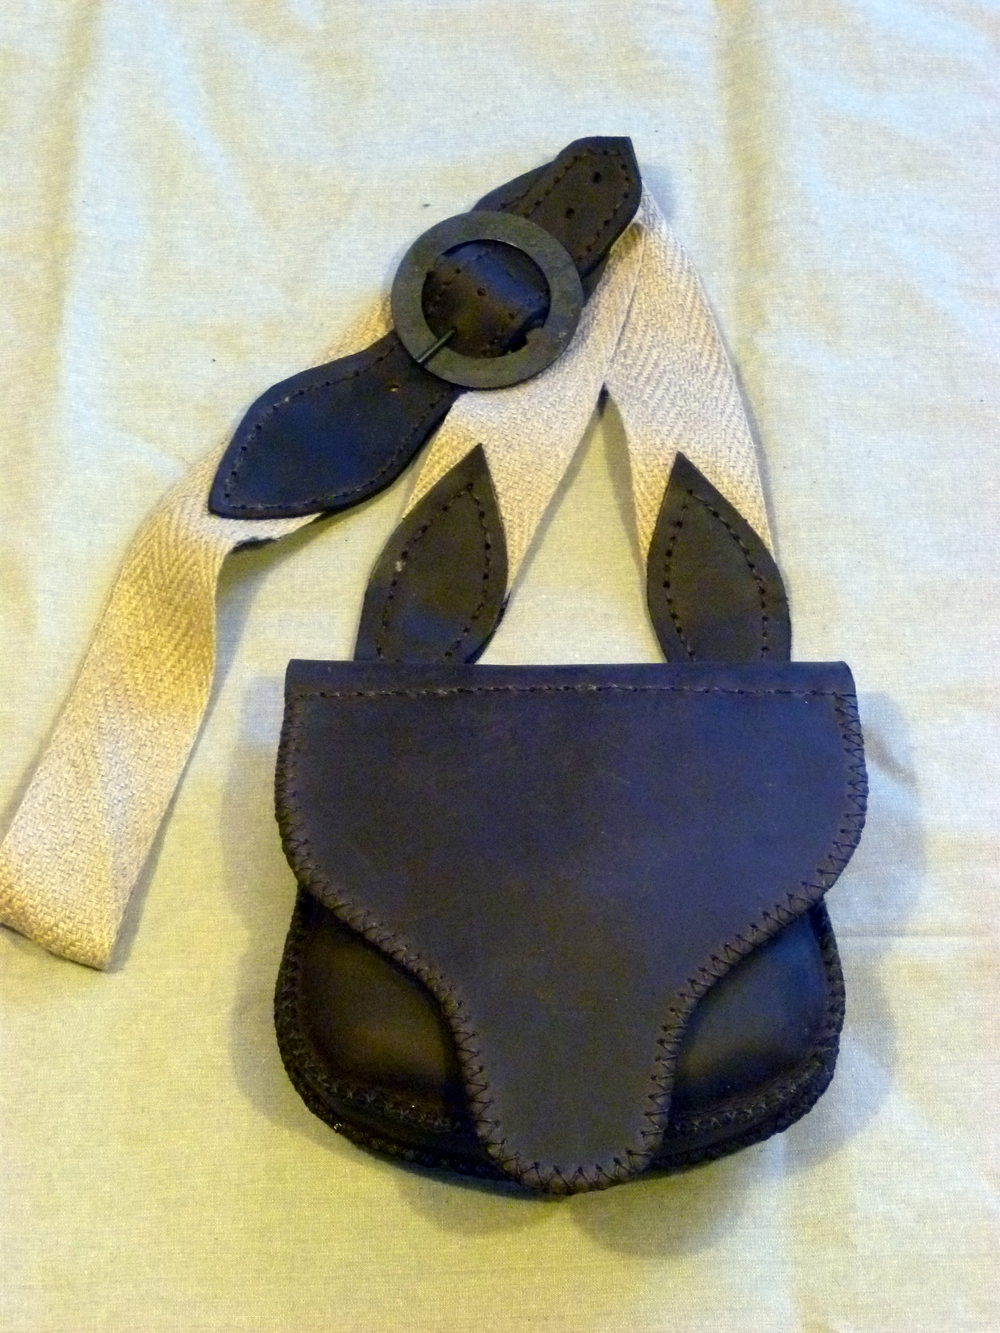 "Single Pouch Shooting Bag, Lined Flap: 2 inside pockets, lined flap with design, patch knife sheath on back.  Size: 8 1/2"" x 7 1/2"" x 2""  Price: $75.00  Inventory Tag: GB-2-SGS"